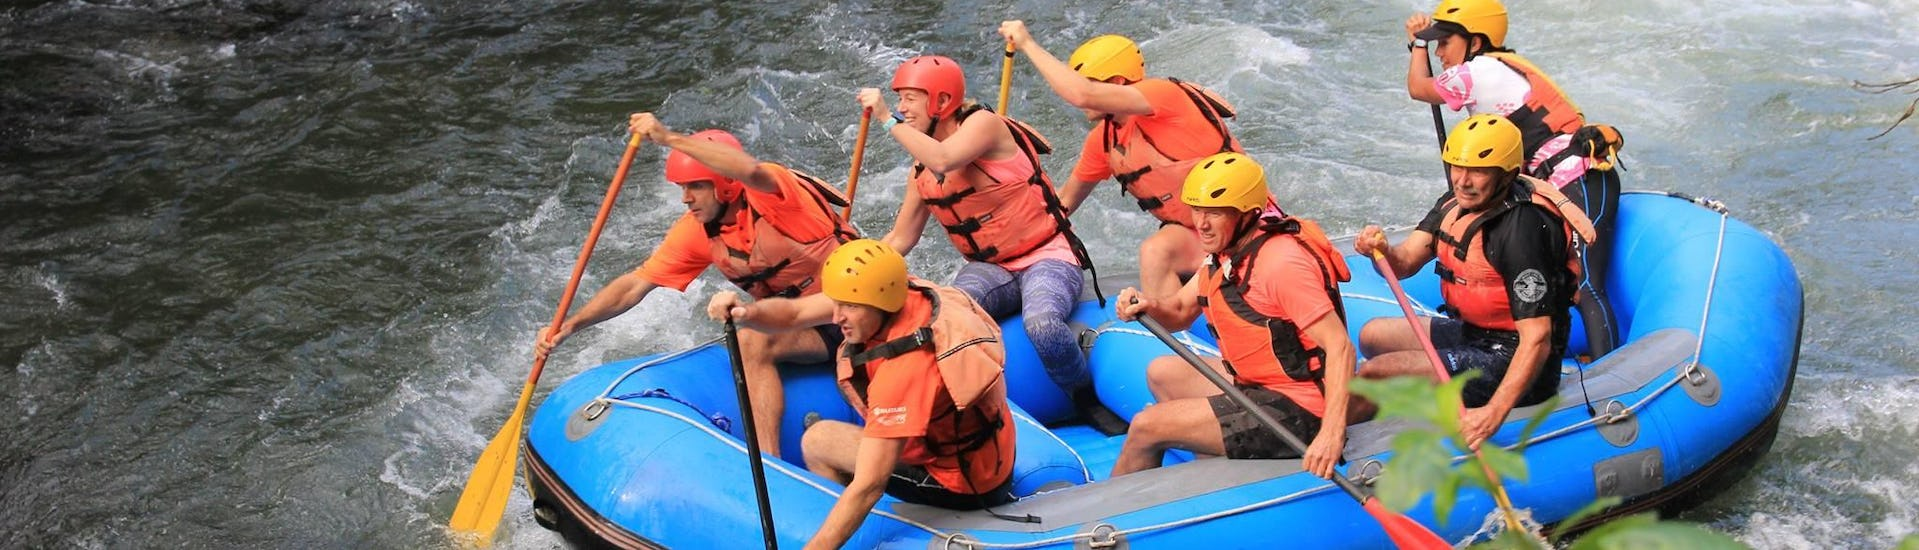 During Rangitaiki River Rafting in Murupara with Rafting Adventure Rotorua, the participants are paddling together in order to overcome any obstacles on the river.